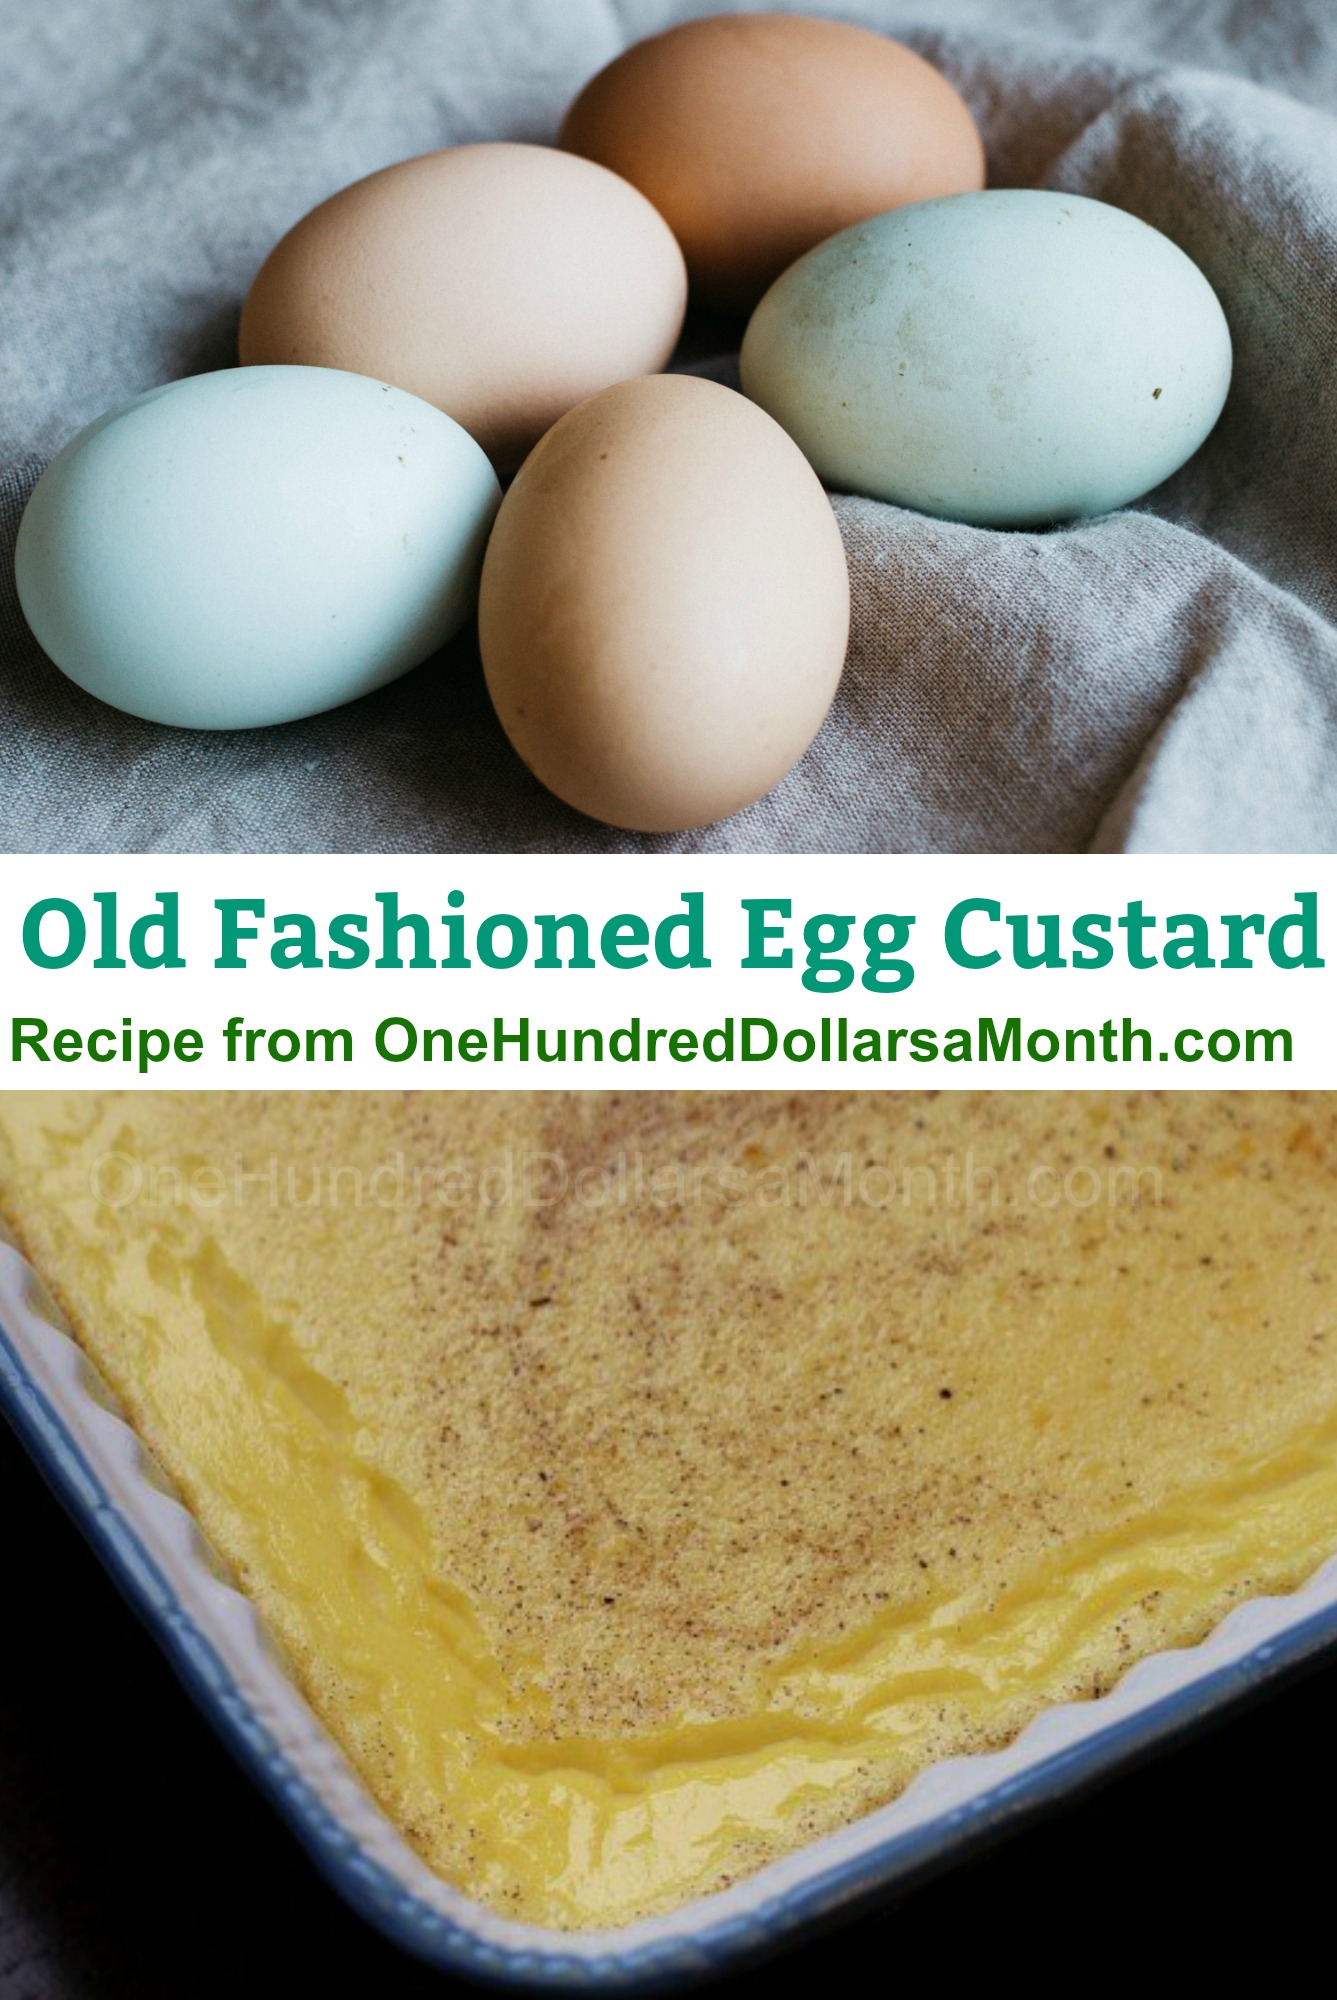 Old fashioned egg custard recipe 48